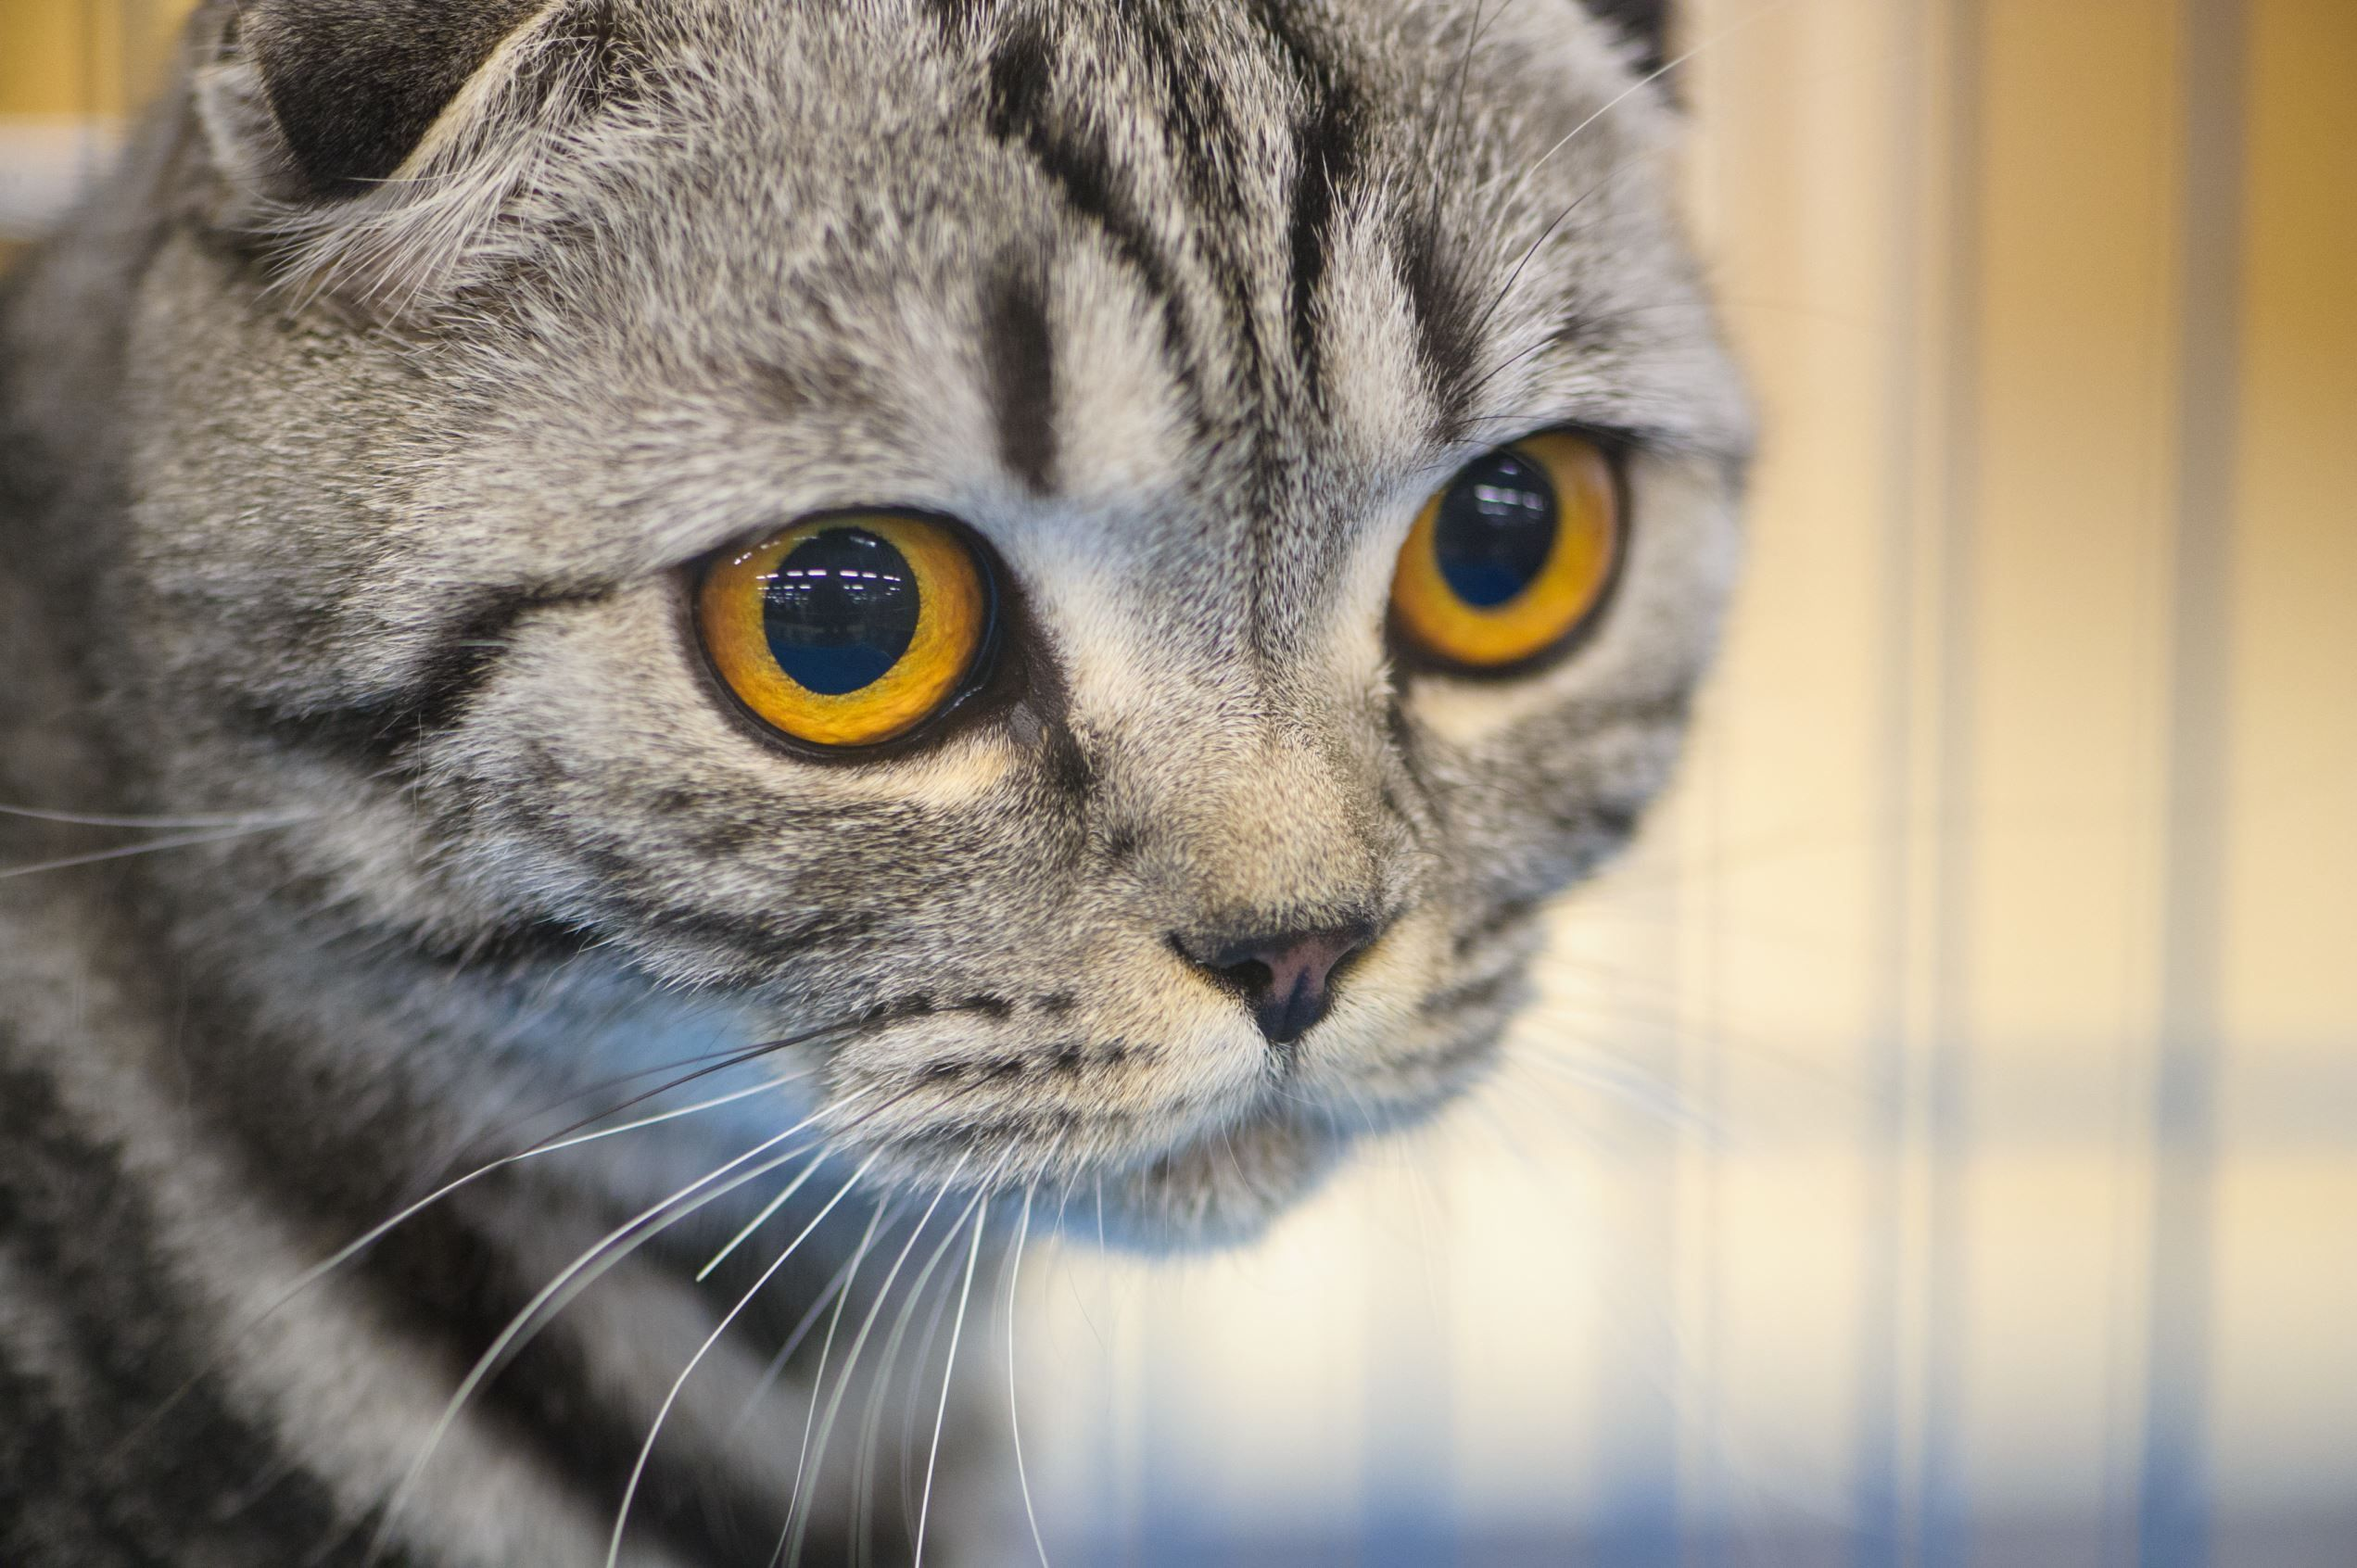 Normally, a cat has around 12 whiskers on each side of its